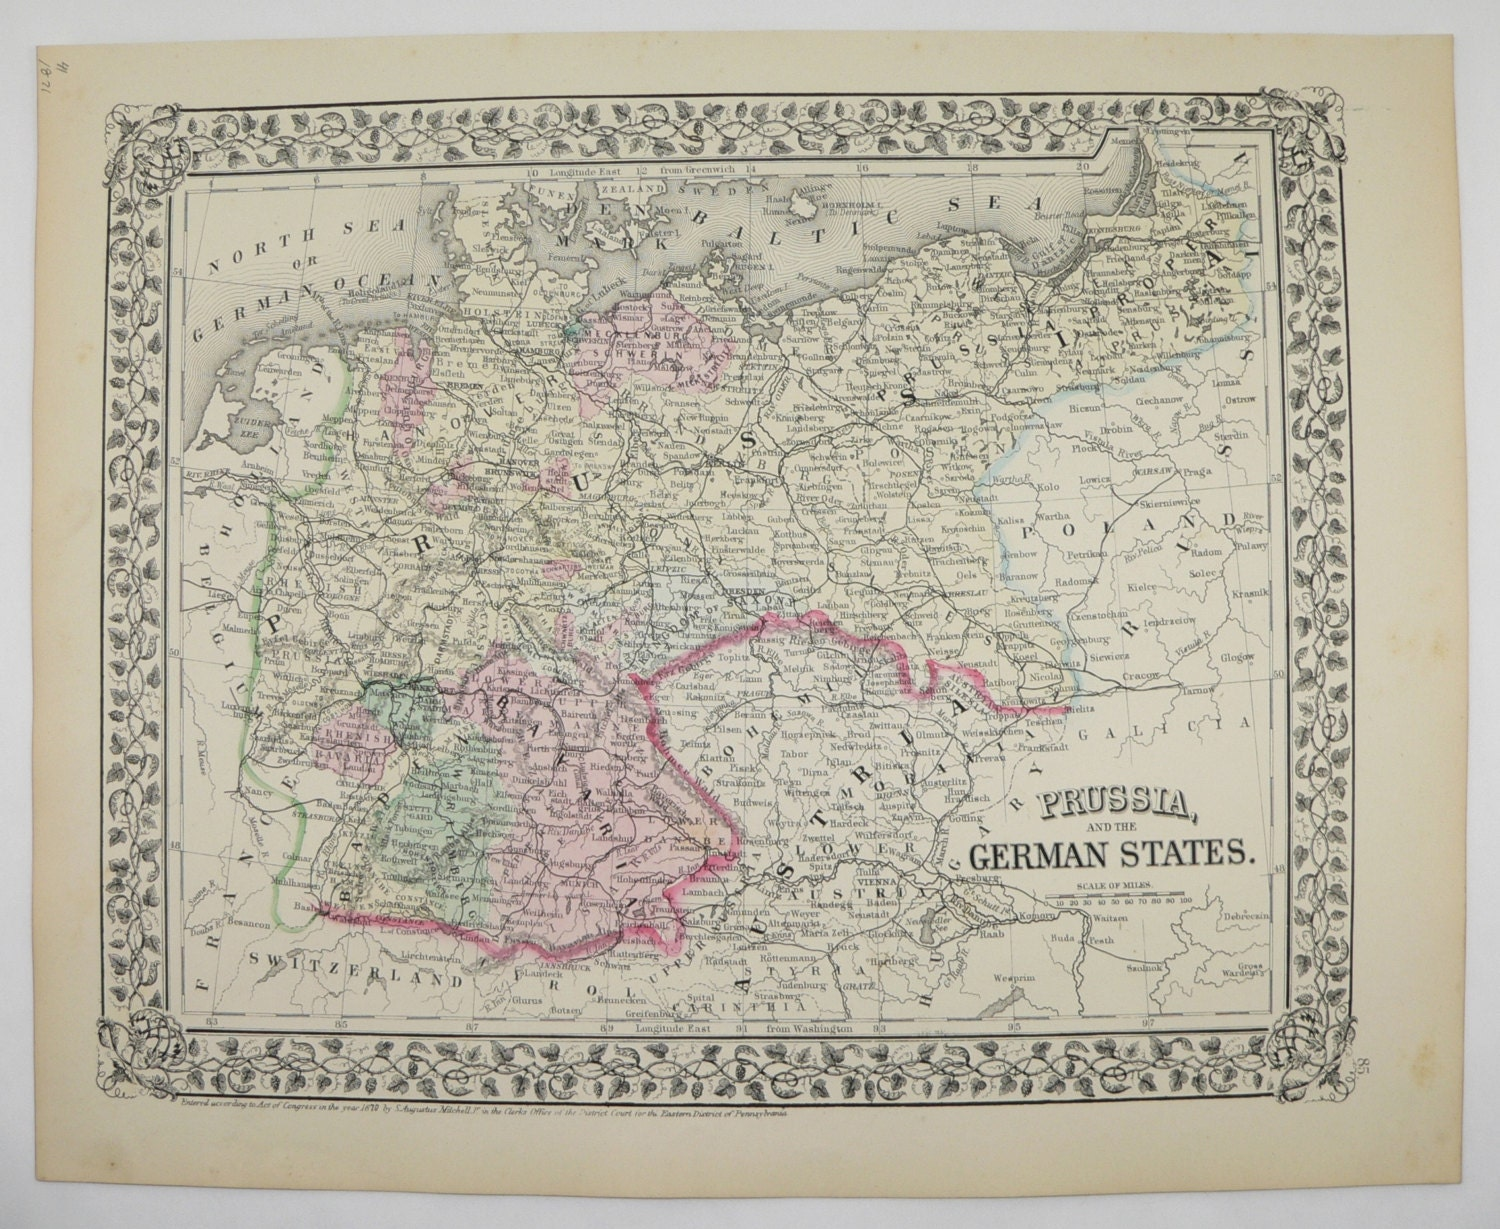 Antique Germany Map Prussia German States Map 1871 Mitchell